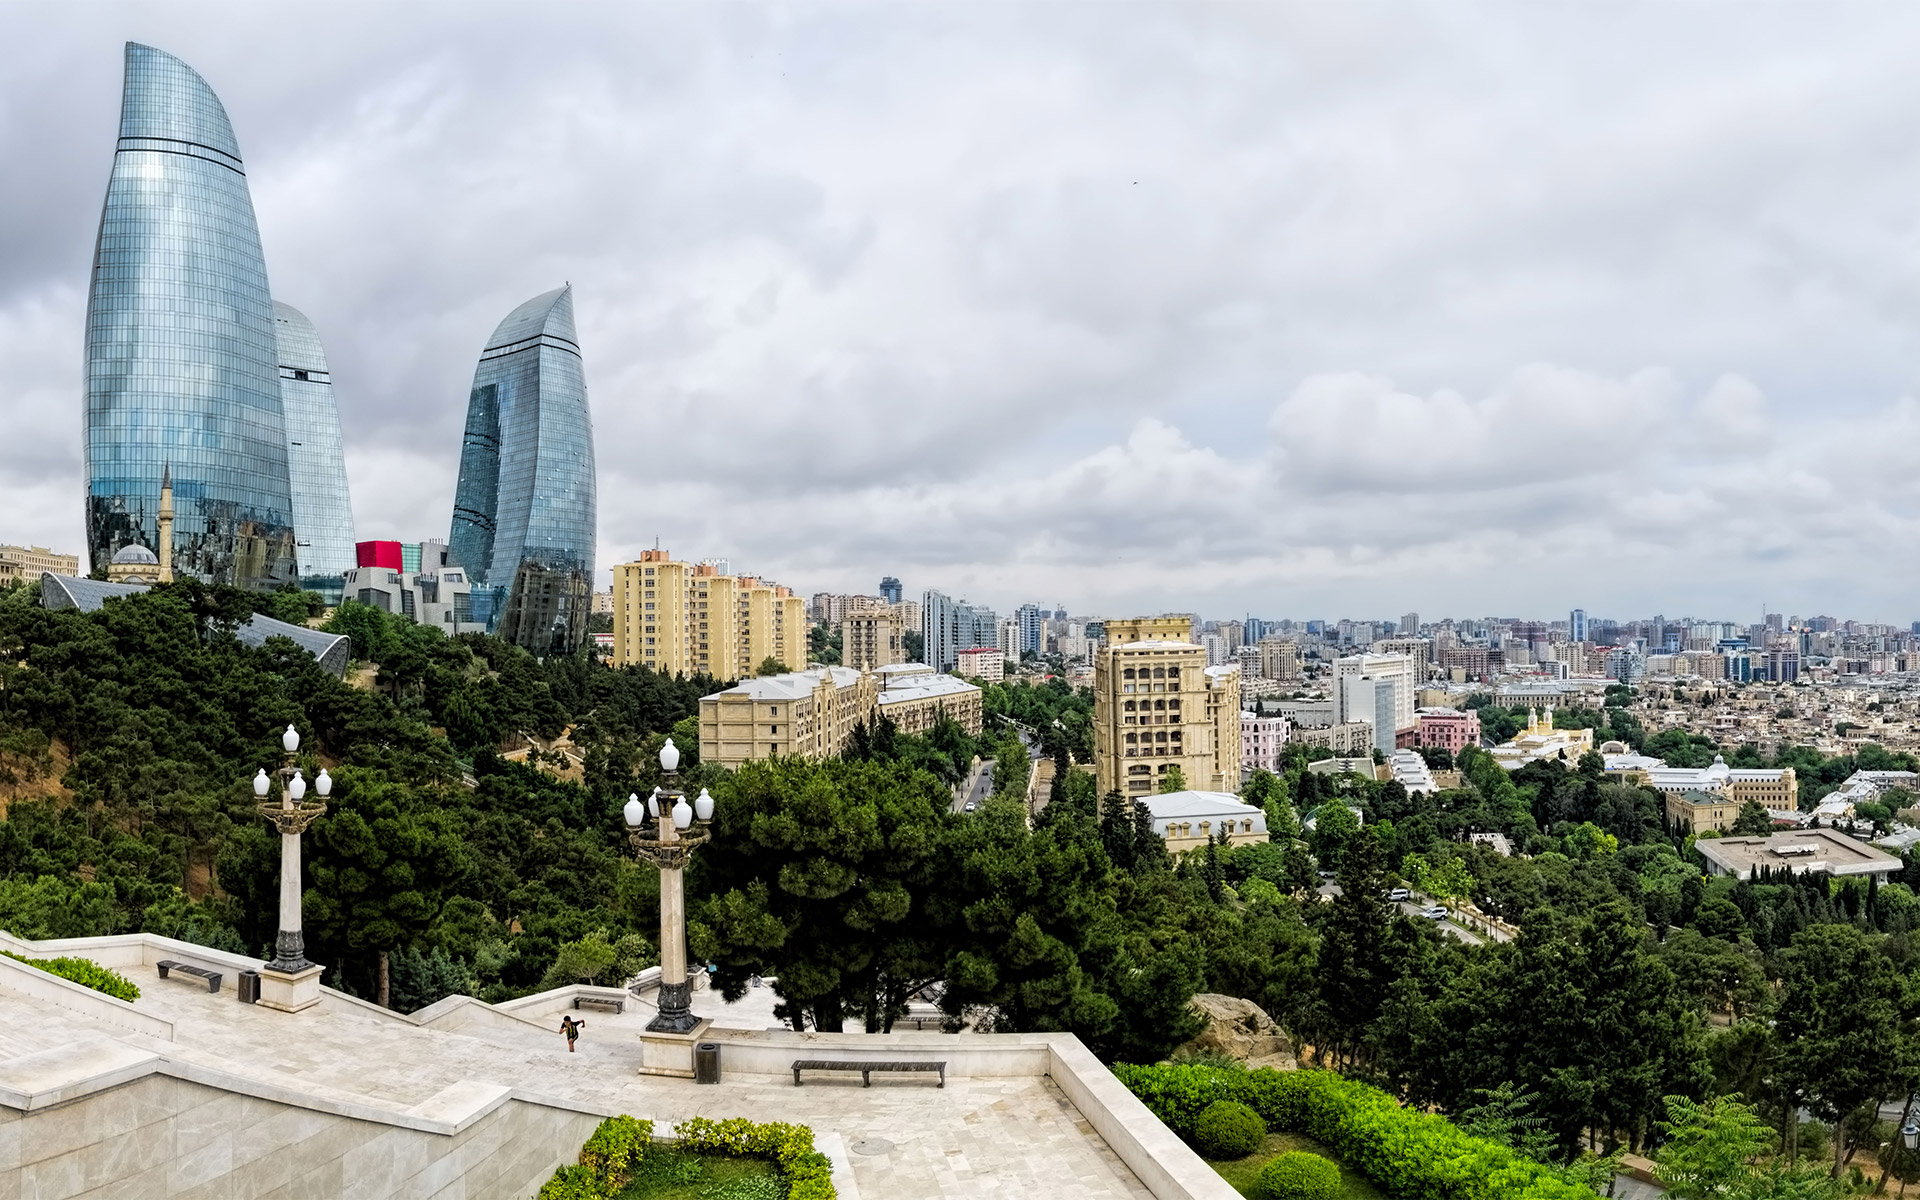 A TRIP TO AZERBAIJAN: BAKU, BETWEEN EAST AND WEST